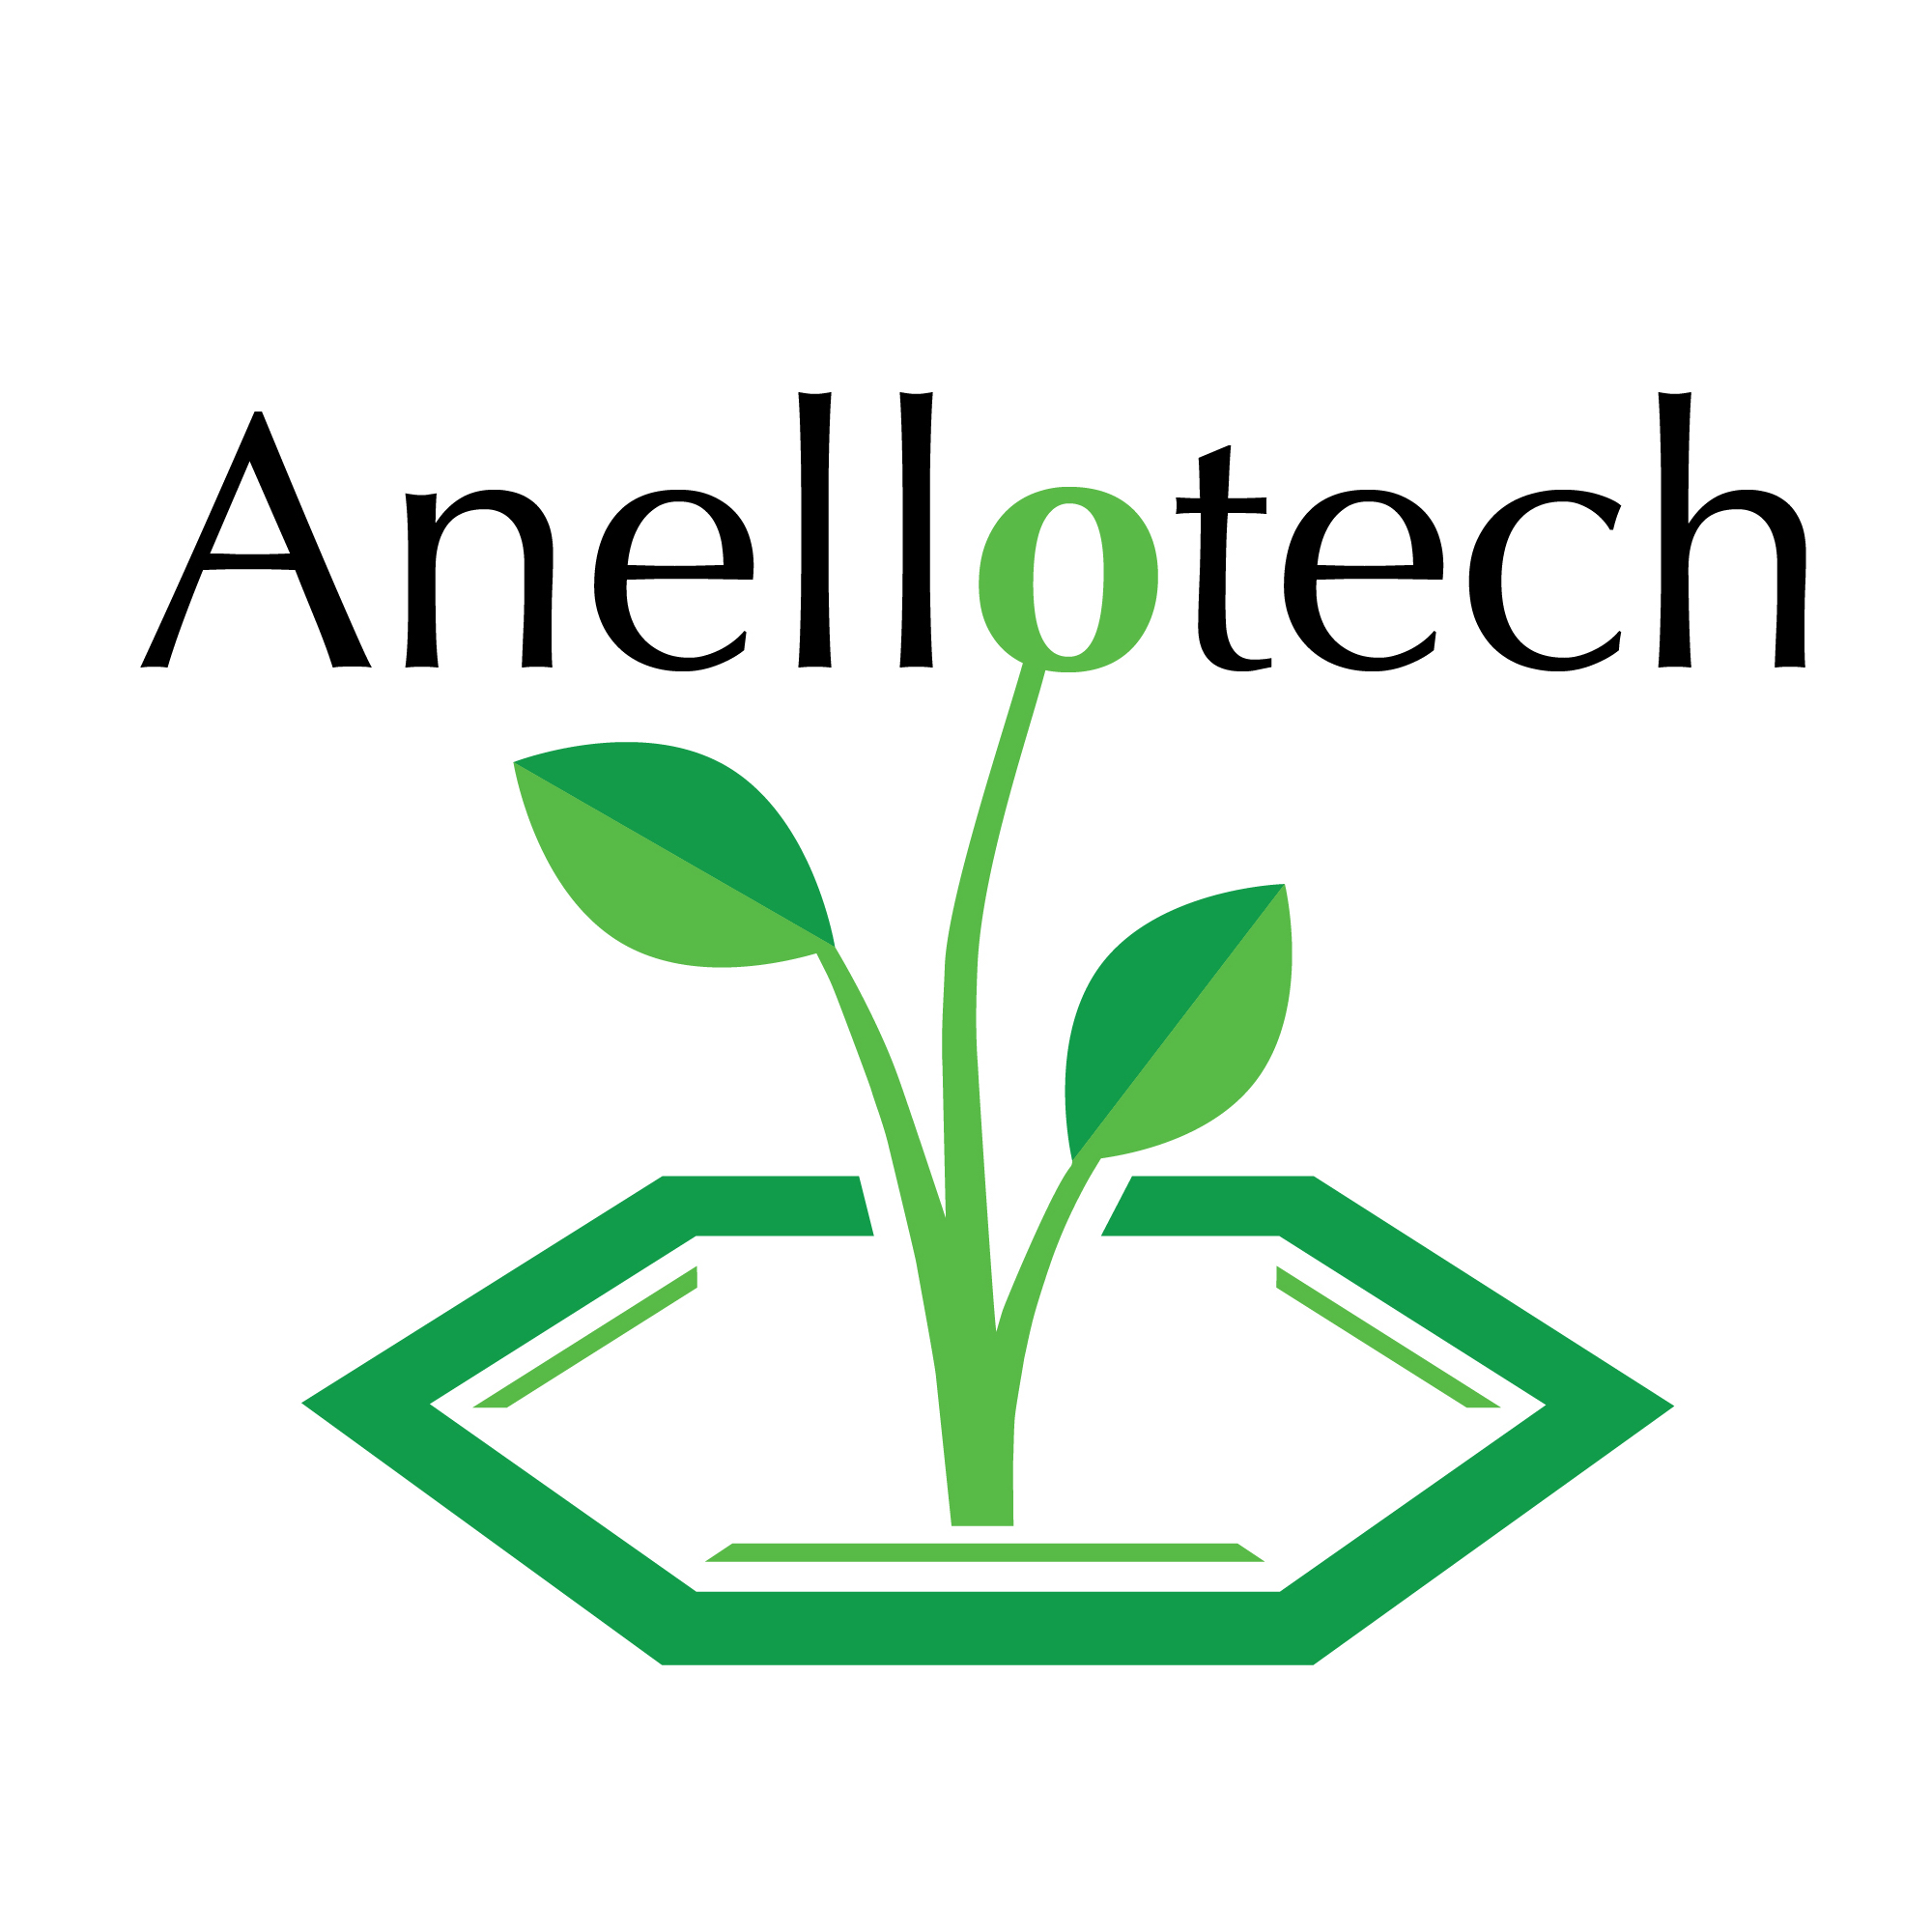 Anellotech Press Release 26 February 2019 - 100% Renewable Plastic Bottle Significantly Closer to Reality After Successful Production of Bio based Paraxylene from Non food Biomass, Bio based Benzene Is Next